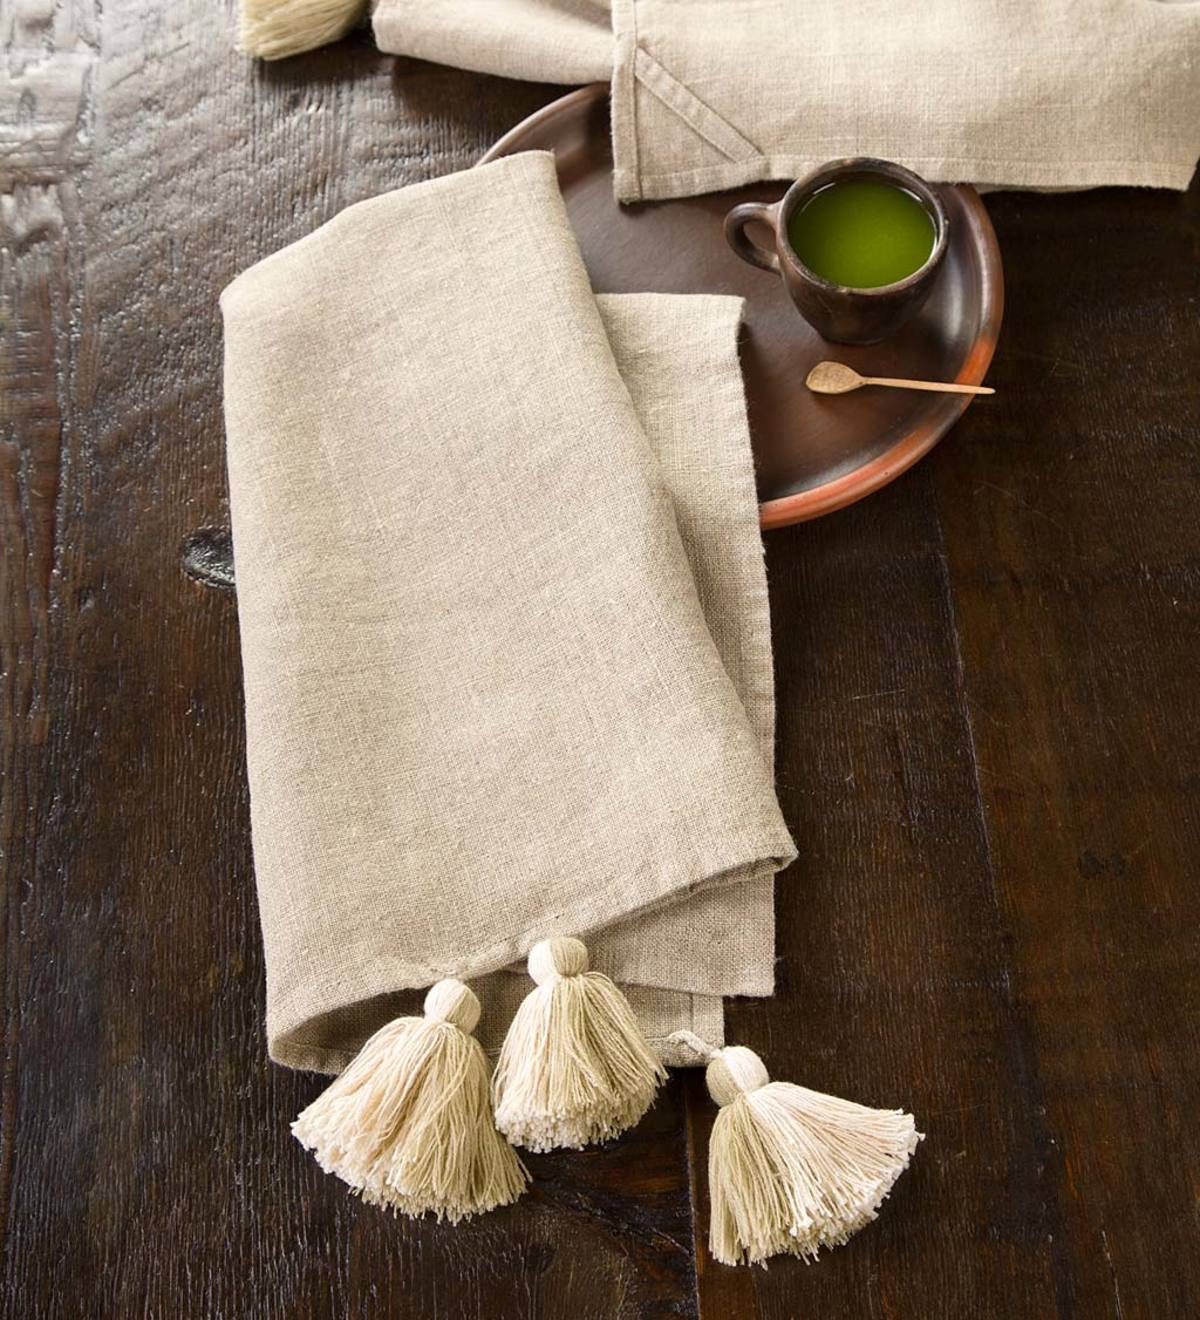 Set of 2 Linen Tasseled Tea Towels